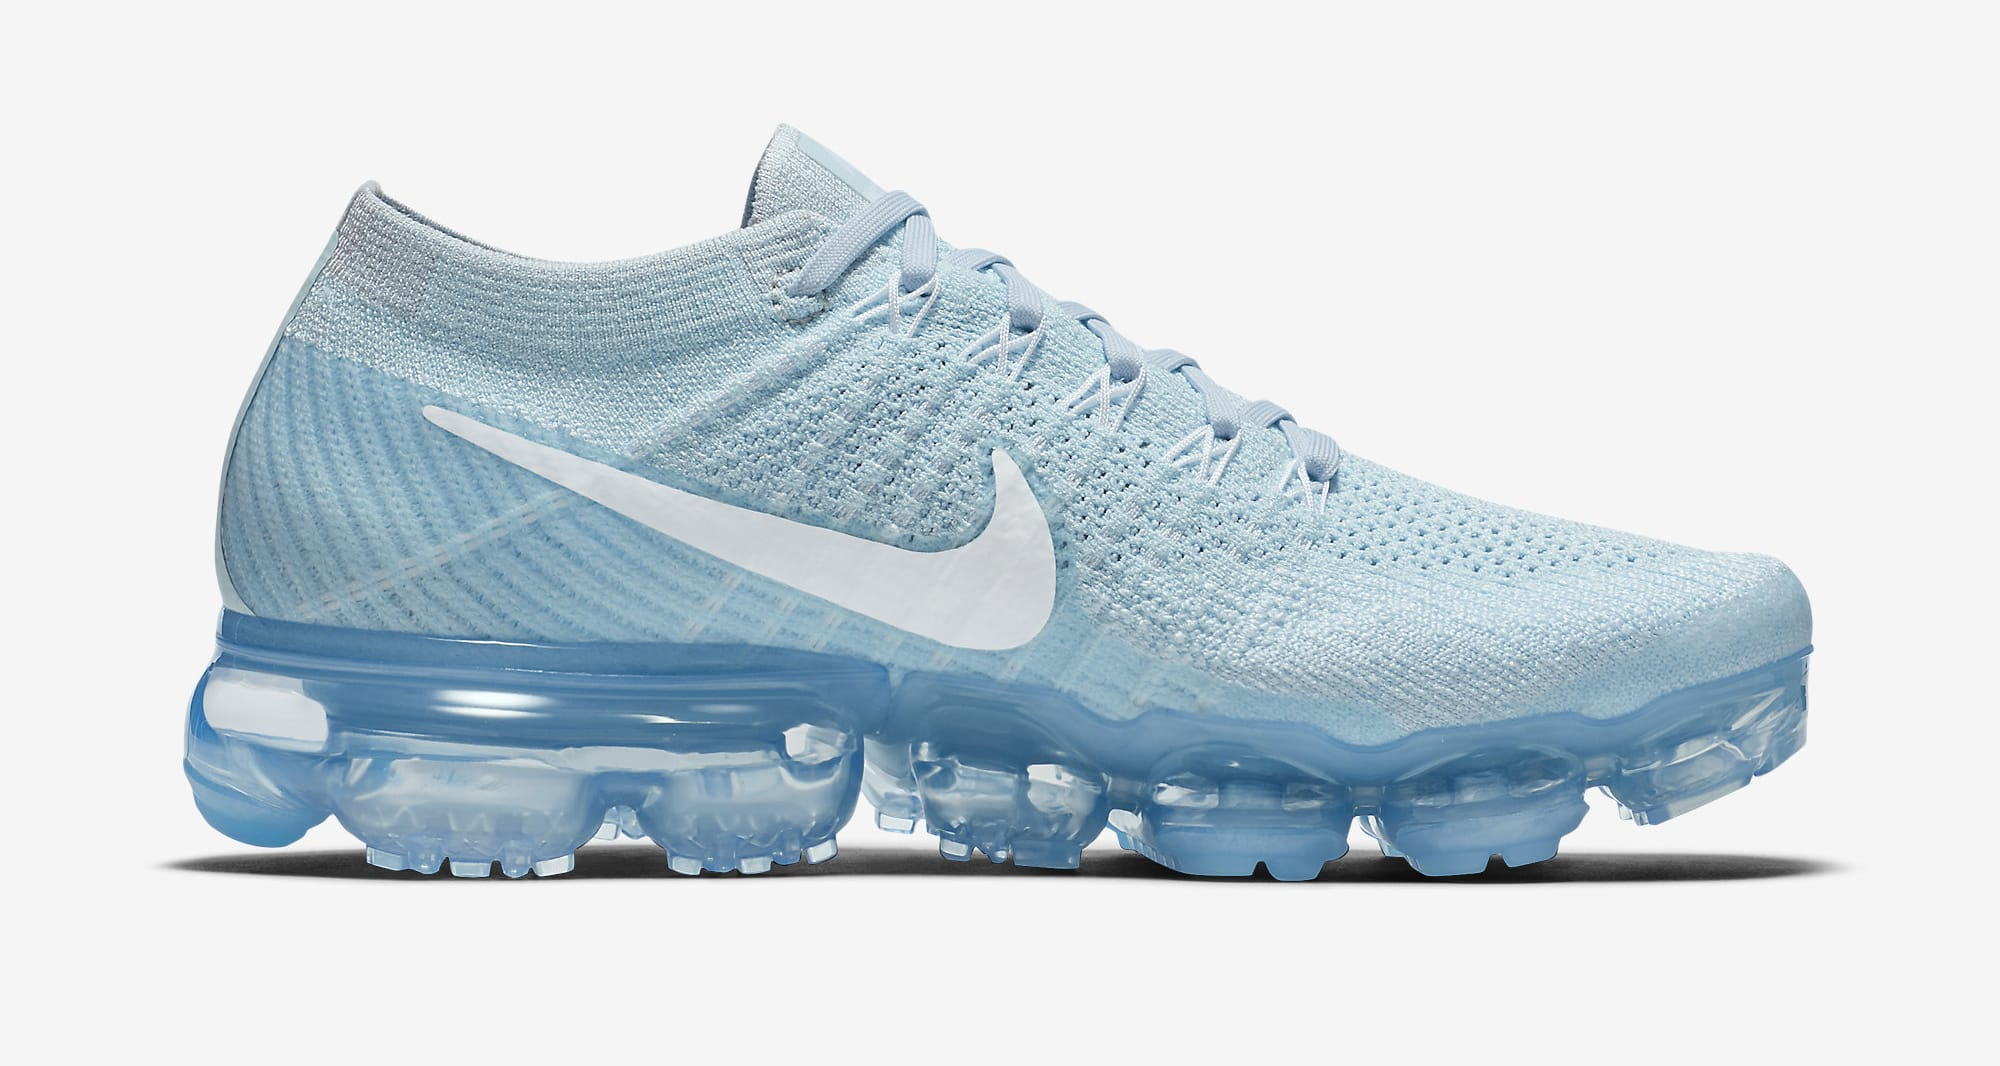 new product fdda8 791a7 Buy Nike Cheap Air Vapormax Flyknit Running Shoes Sale Online 2018